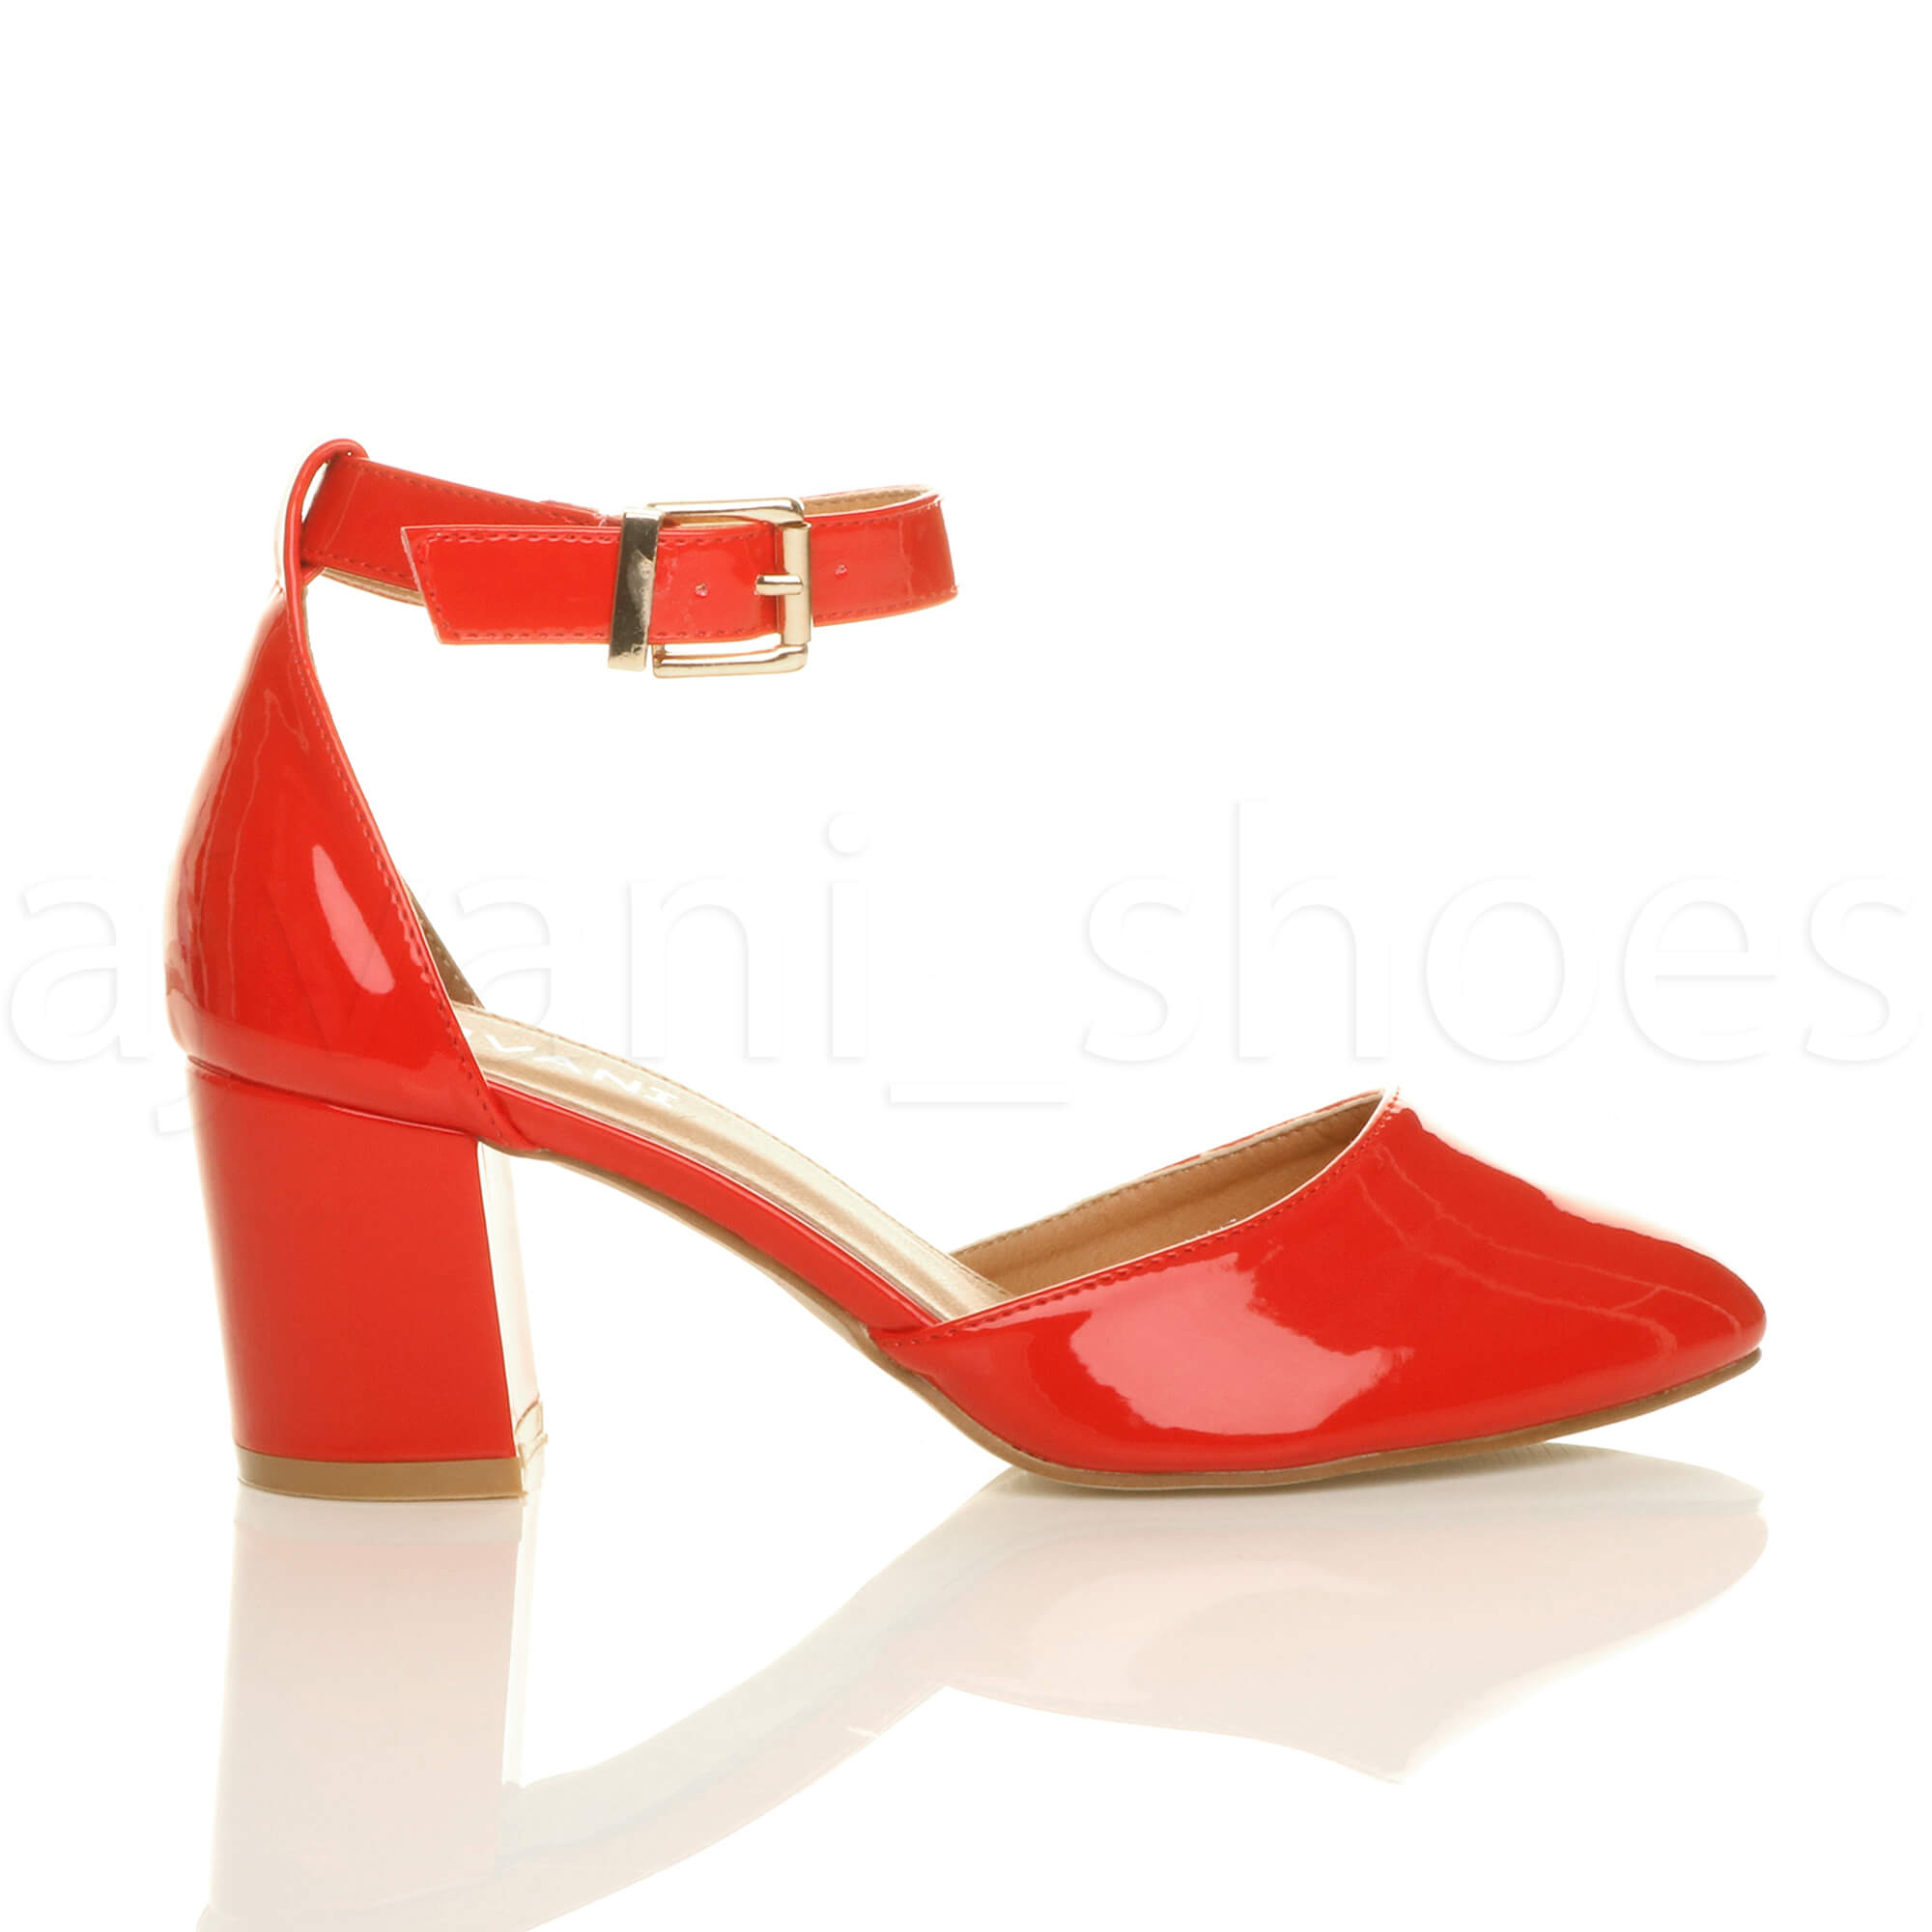 WOMENS-LADIES-LOW-MID-BLOCK-HEEL-ANKLE-STRAP-MARY-JANE-COURT-SHOES-SANDALS-SIZE thumbnail 131